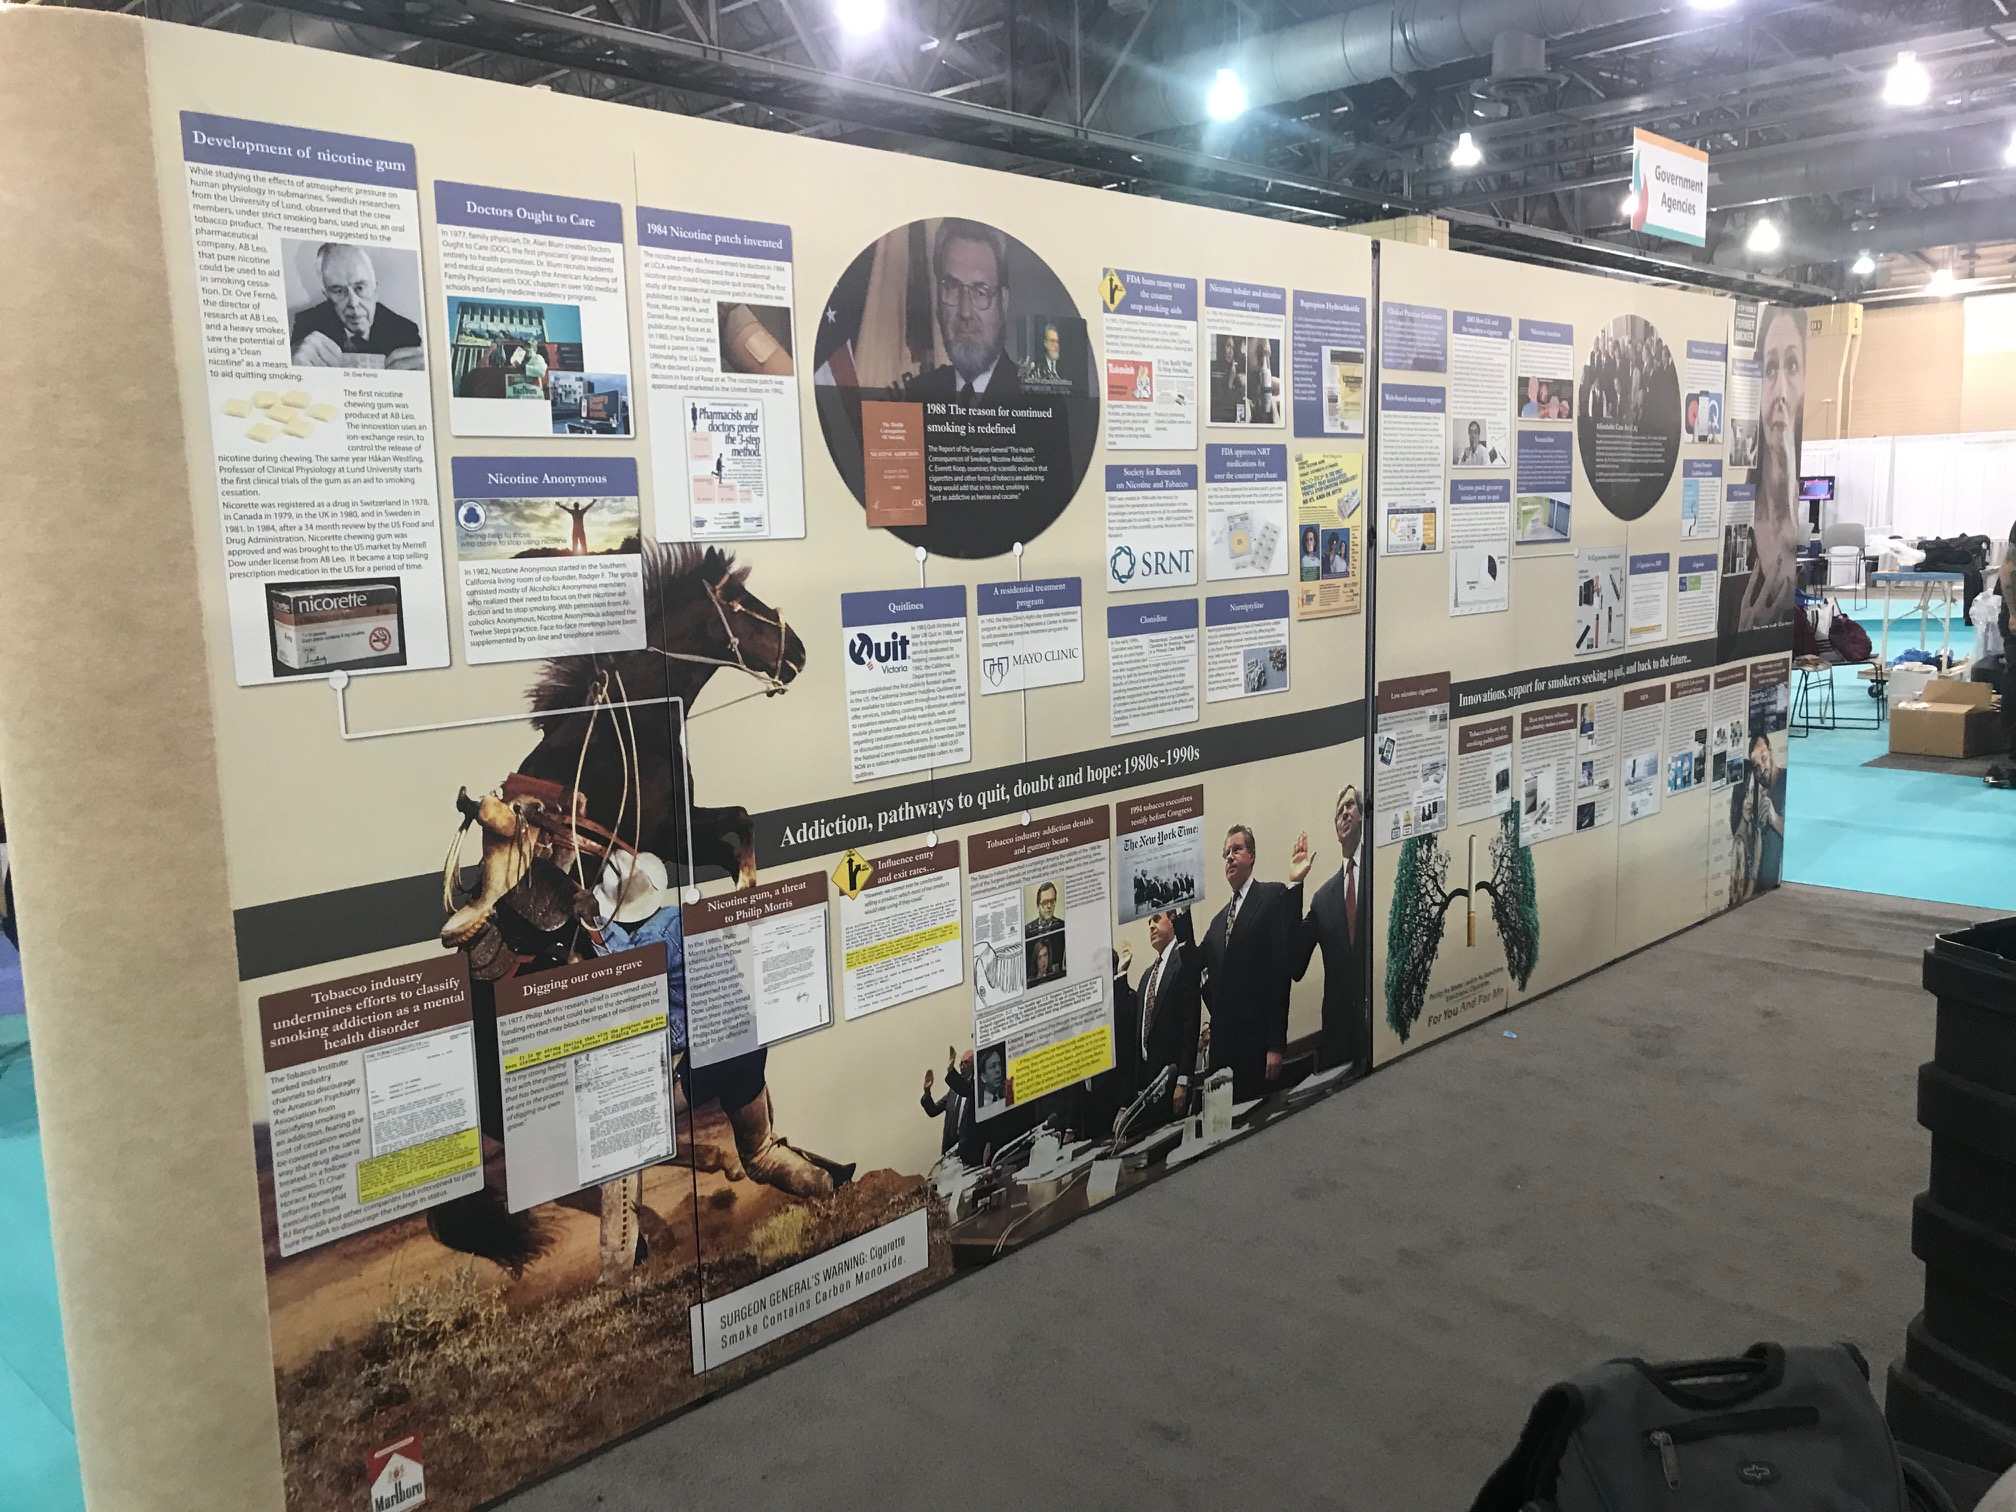 History of Smoking Cessation panels3 and 4. Philadelphia, PA. Nov 2019